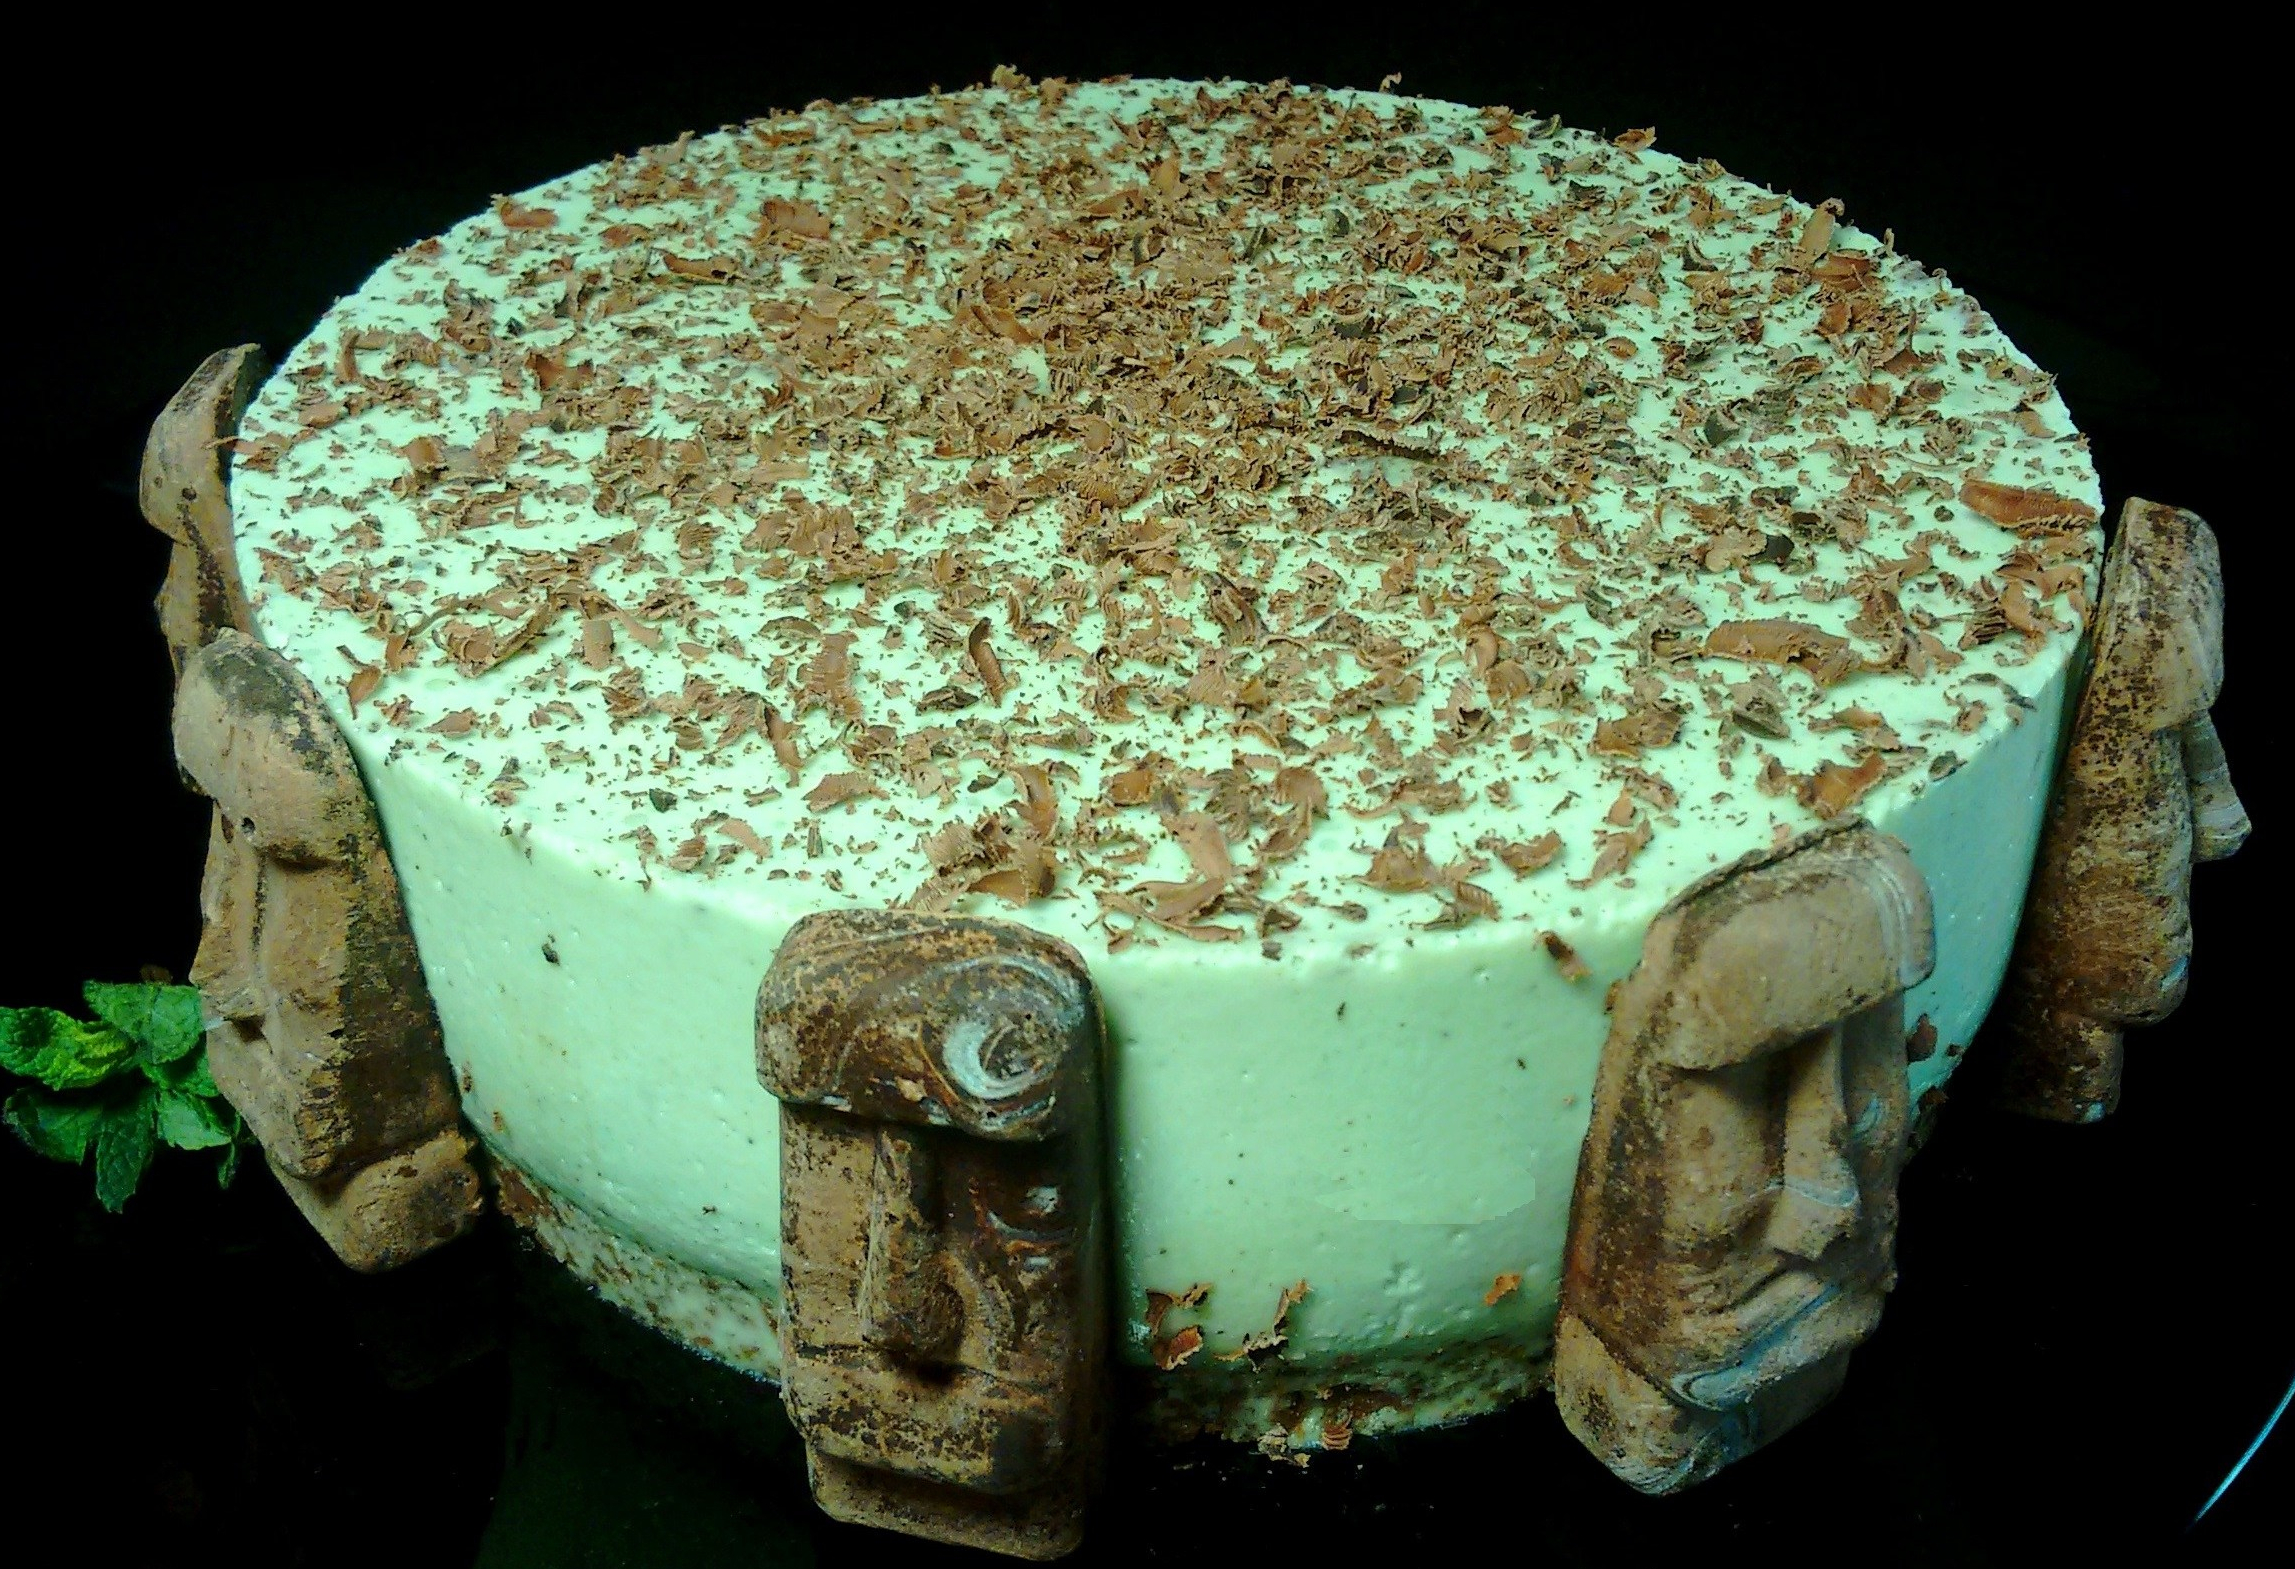 Mint Chocolate Cheesecake - a healthy, no flavors, no colorants mint cheesecake